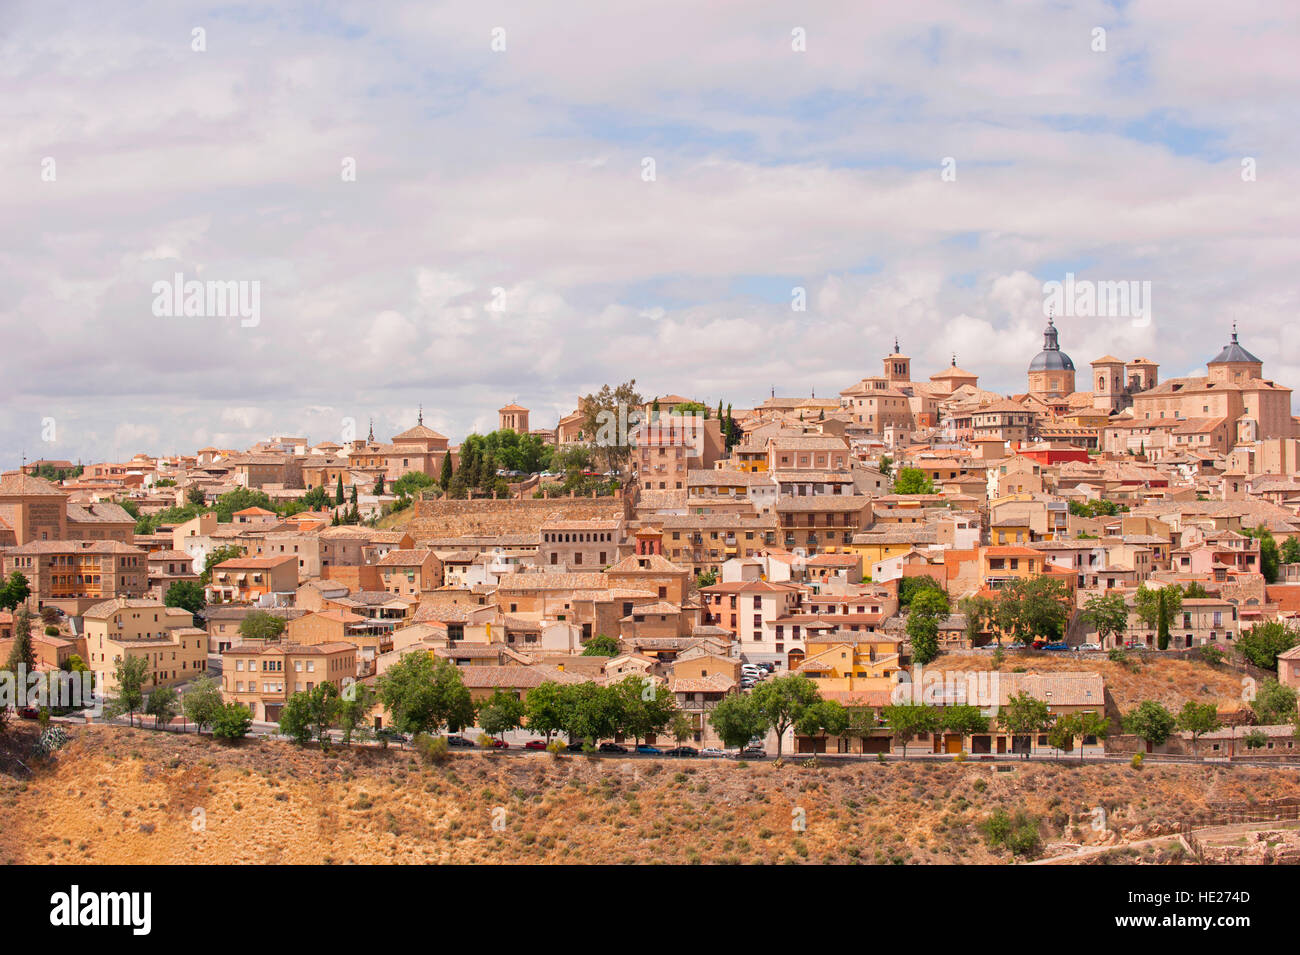 View of the city of Toldeo, Spain - Stock Image